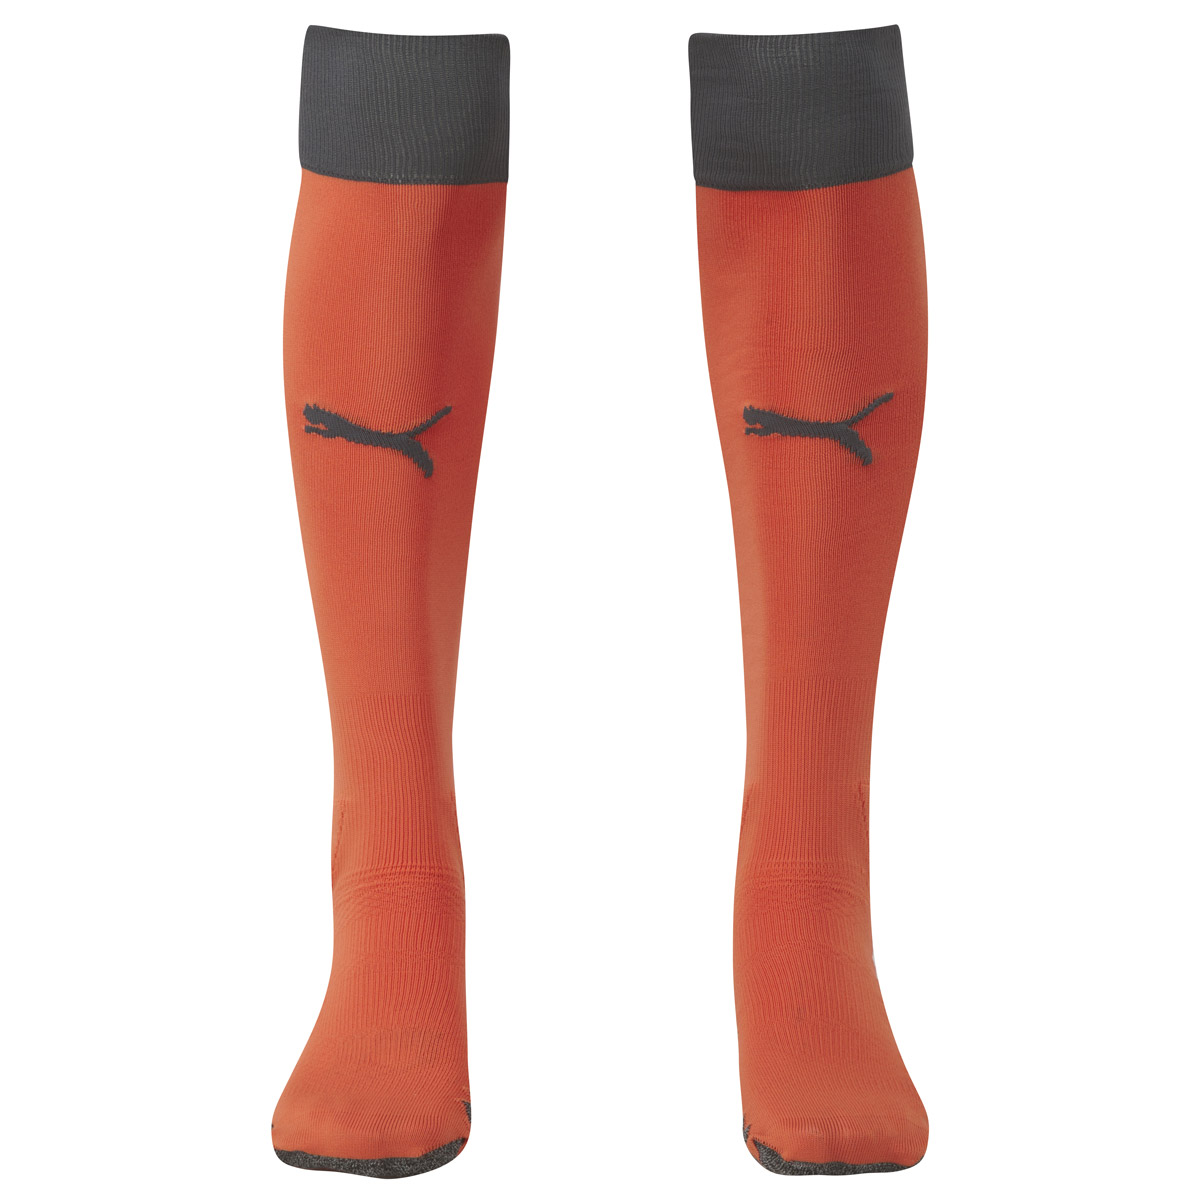 Puma Finale Socks-Orange/Ebony